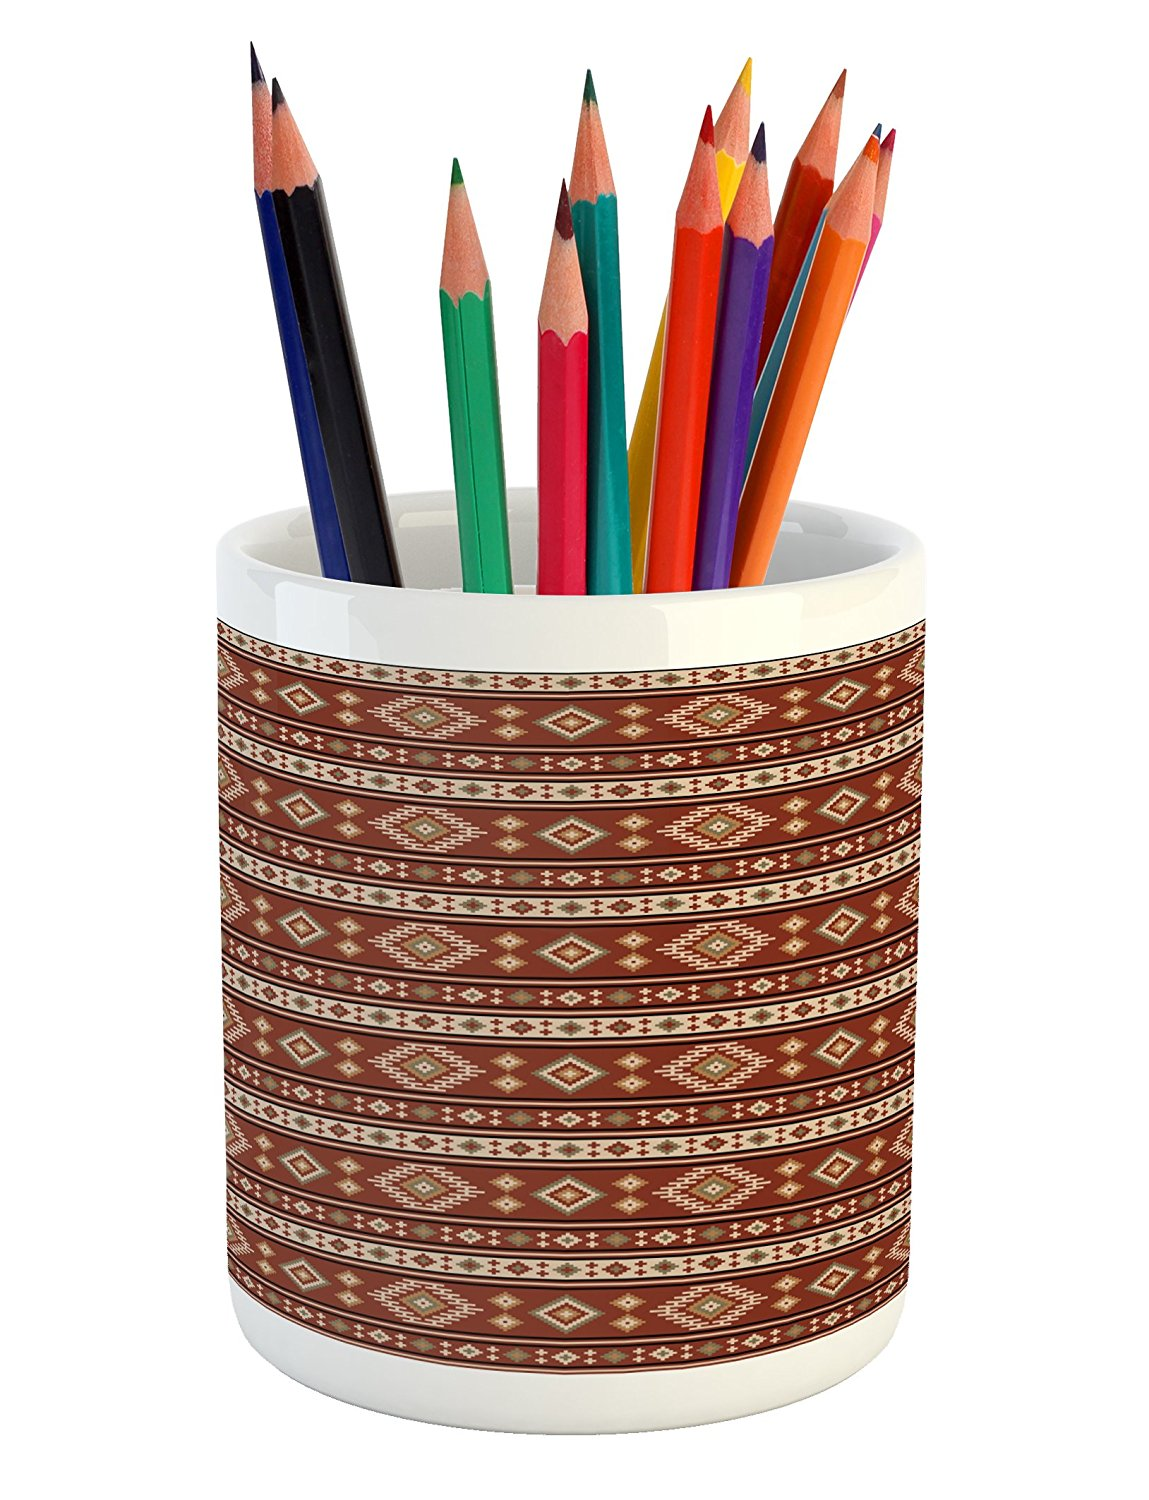 Ambesonne Afghan Pencil Pen Holder, Timeless Rhombuses with Stripes Pattern in Earthy Colors Classical Motifs Design, Printed Ceramic Pencil Pen Holder for Desk Office Accessory, Multicolor